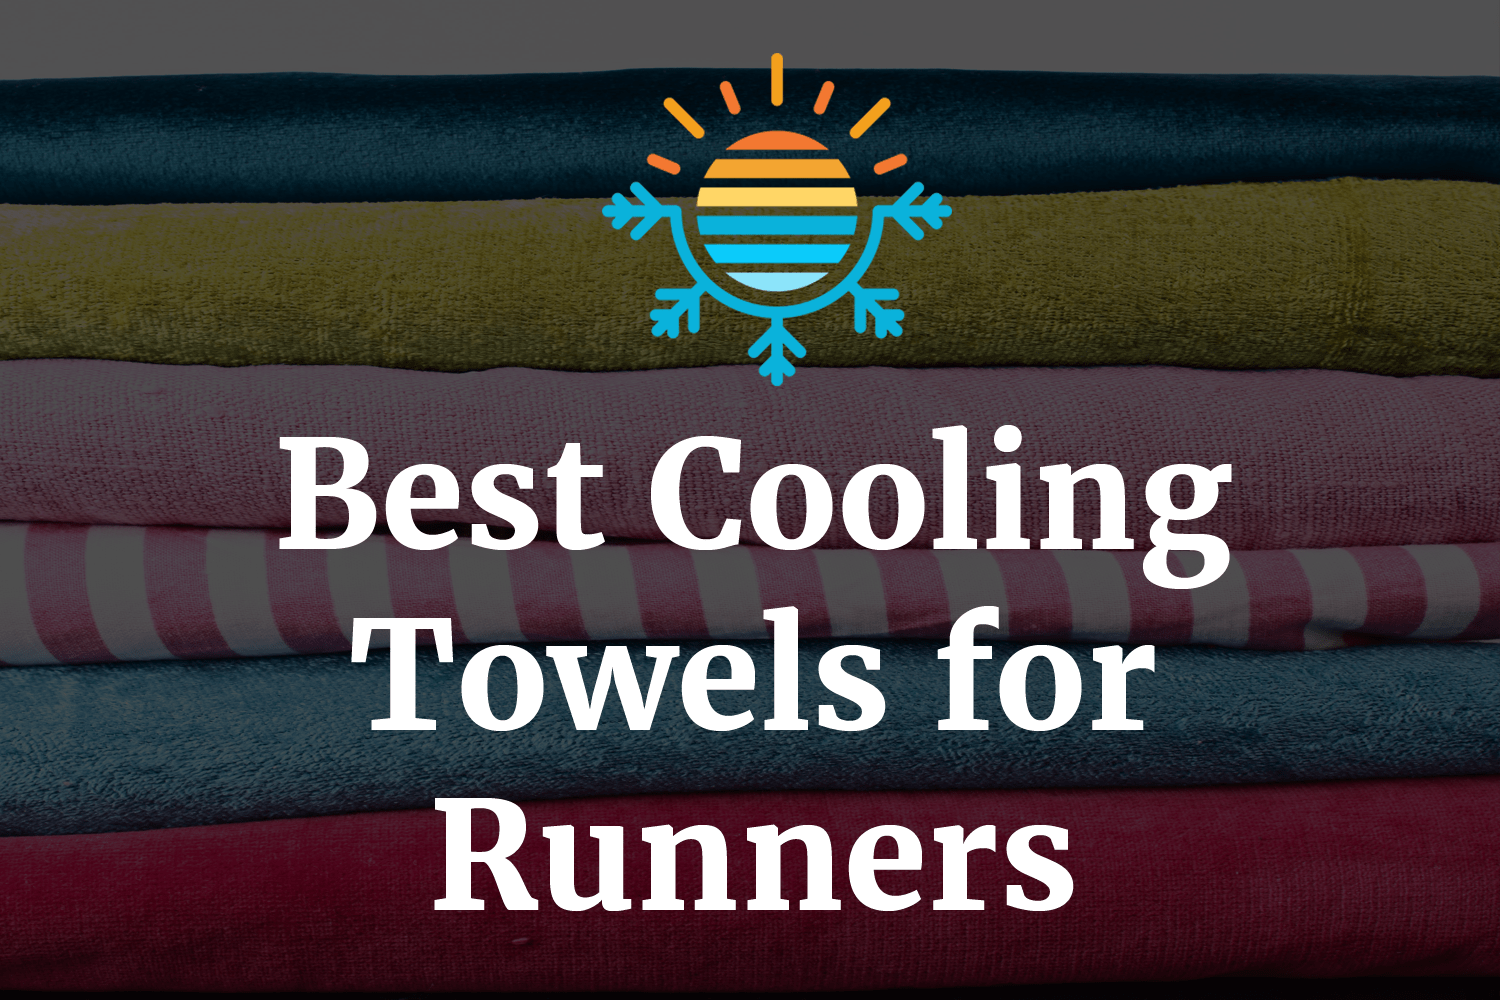 Best cooling towels for runners